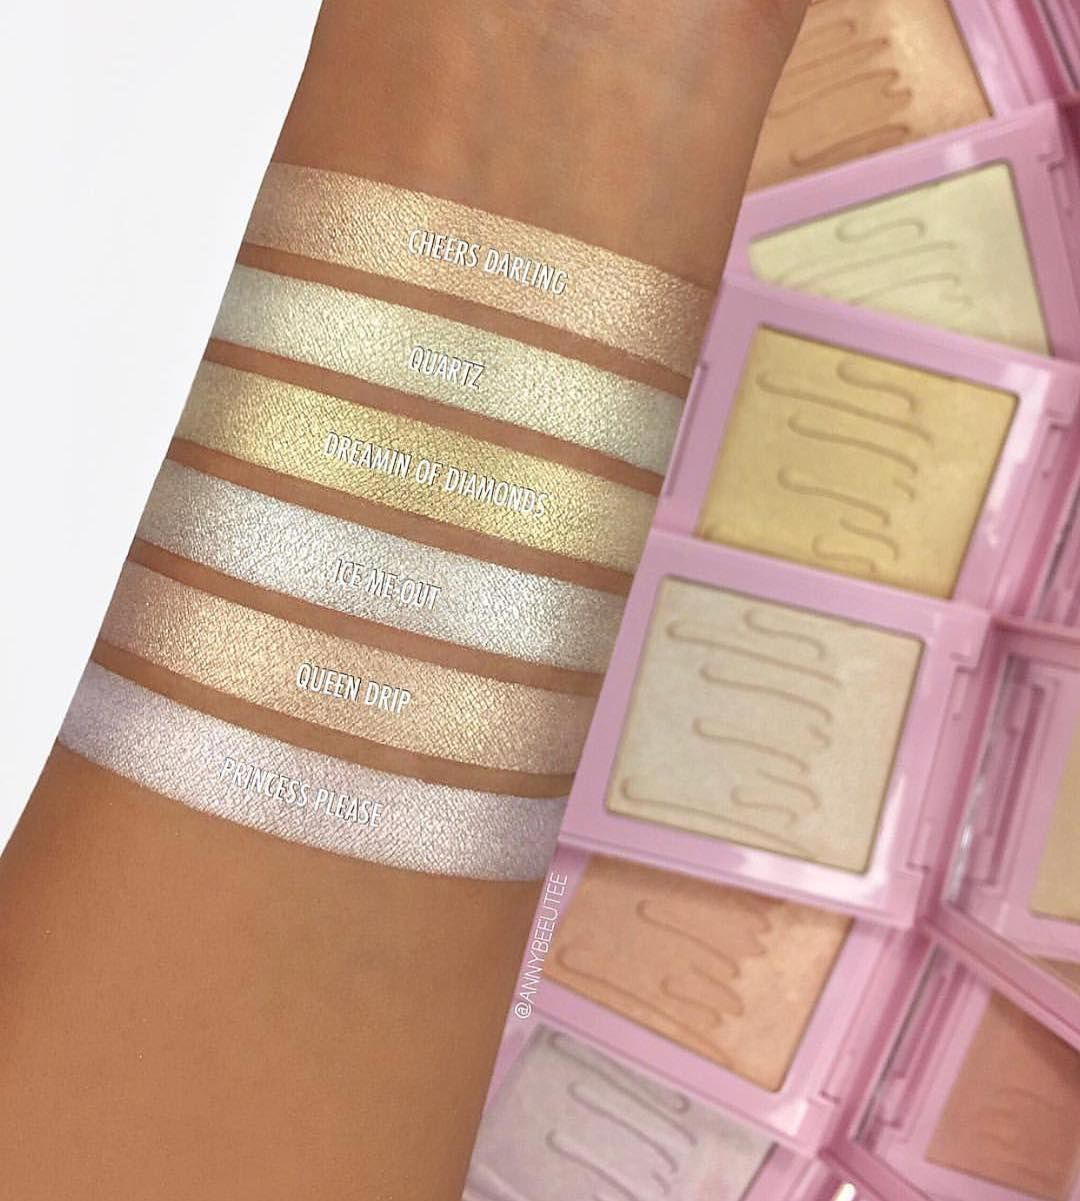 Did you get your brand new Kylighters yet? Which shades